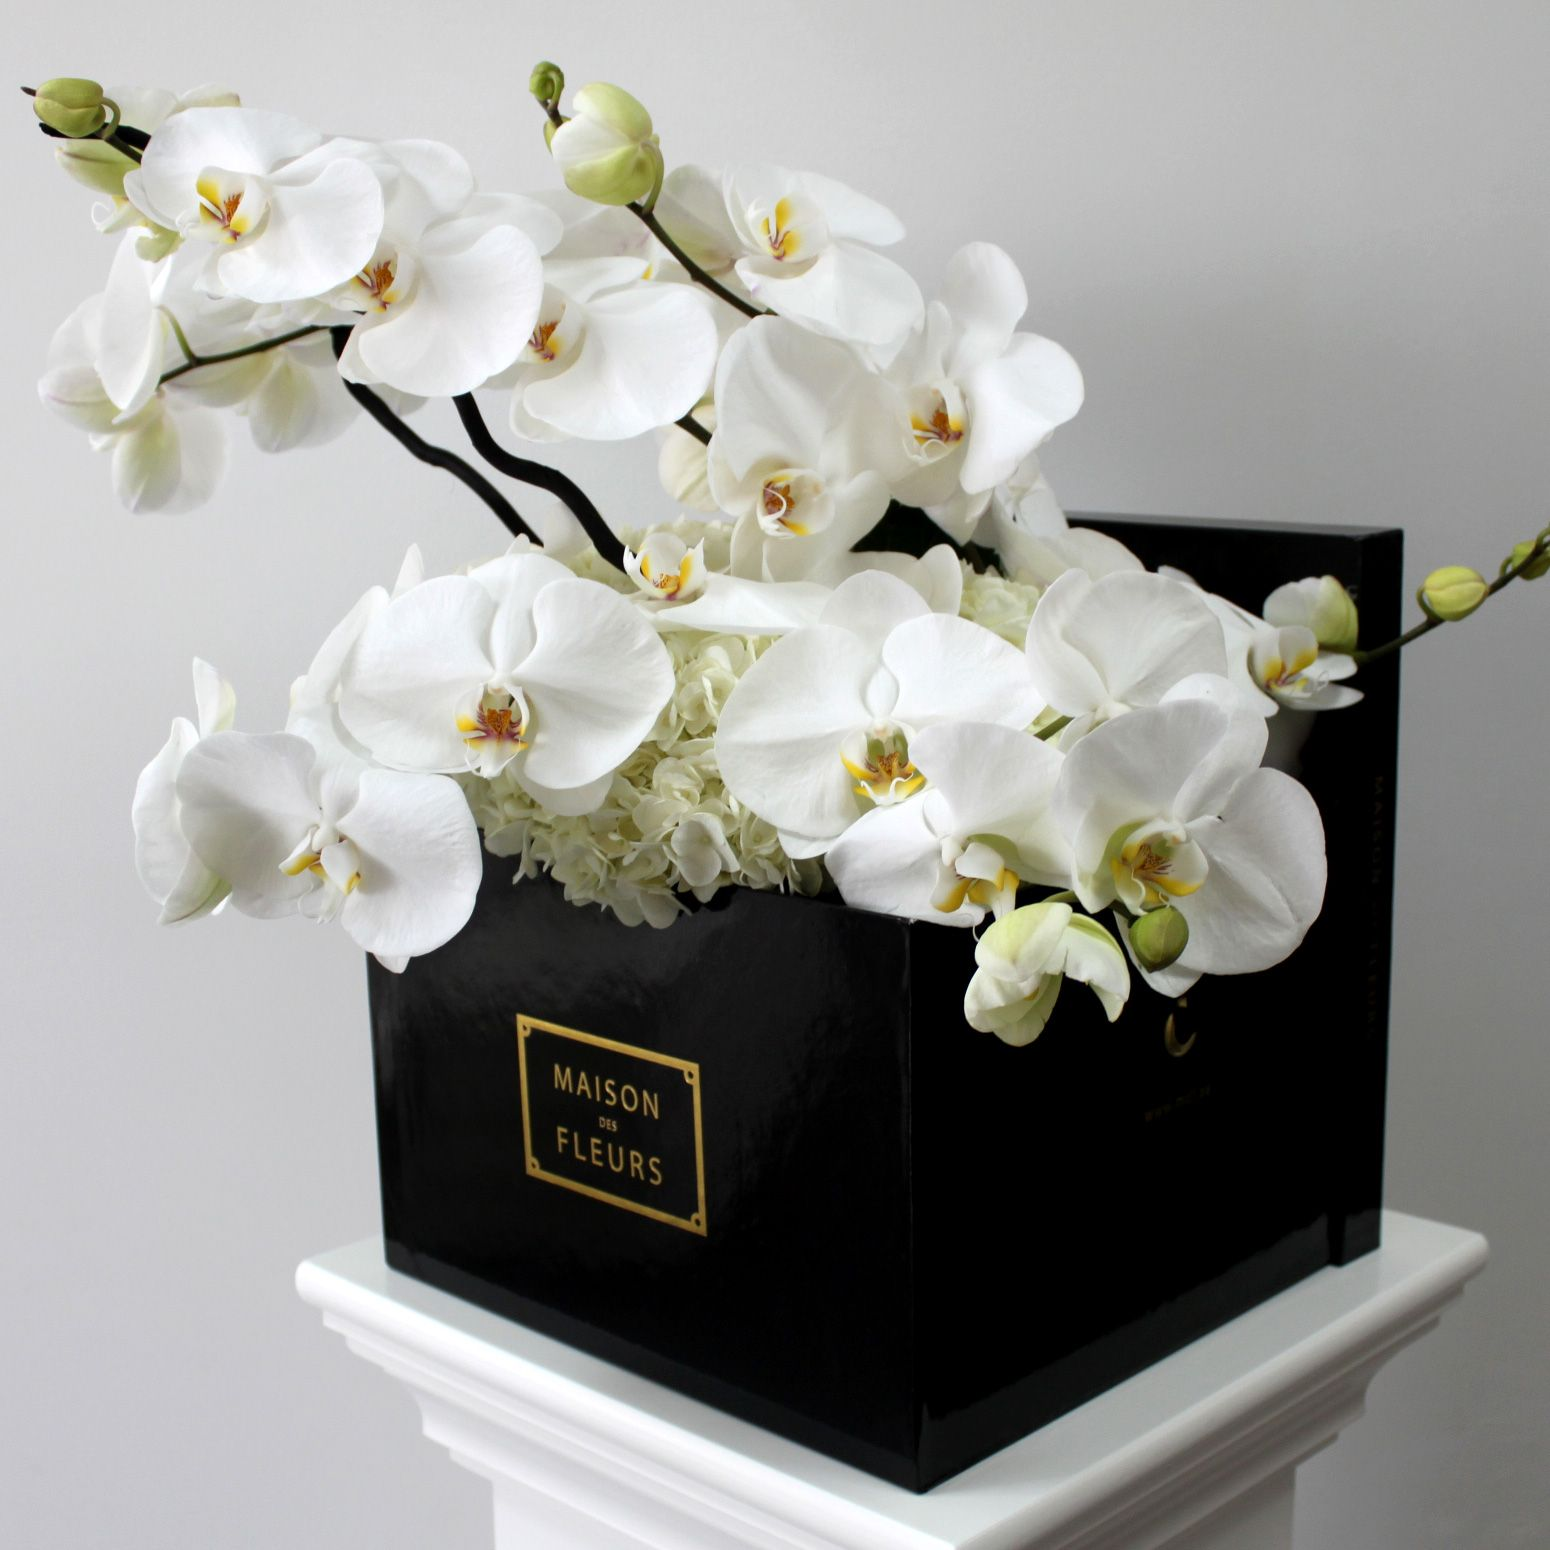 Orchids Absolute Flowers And Home Flower Delivery Flowers Online Flower Arrangements